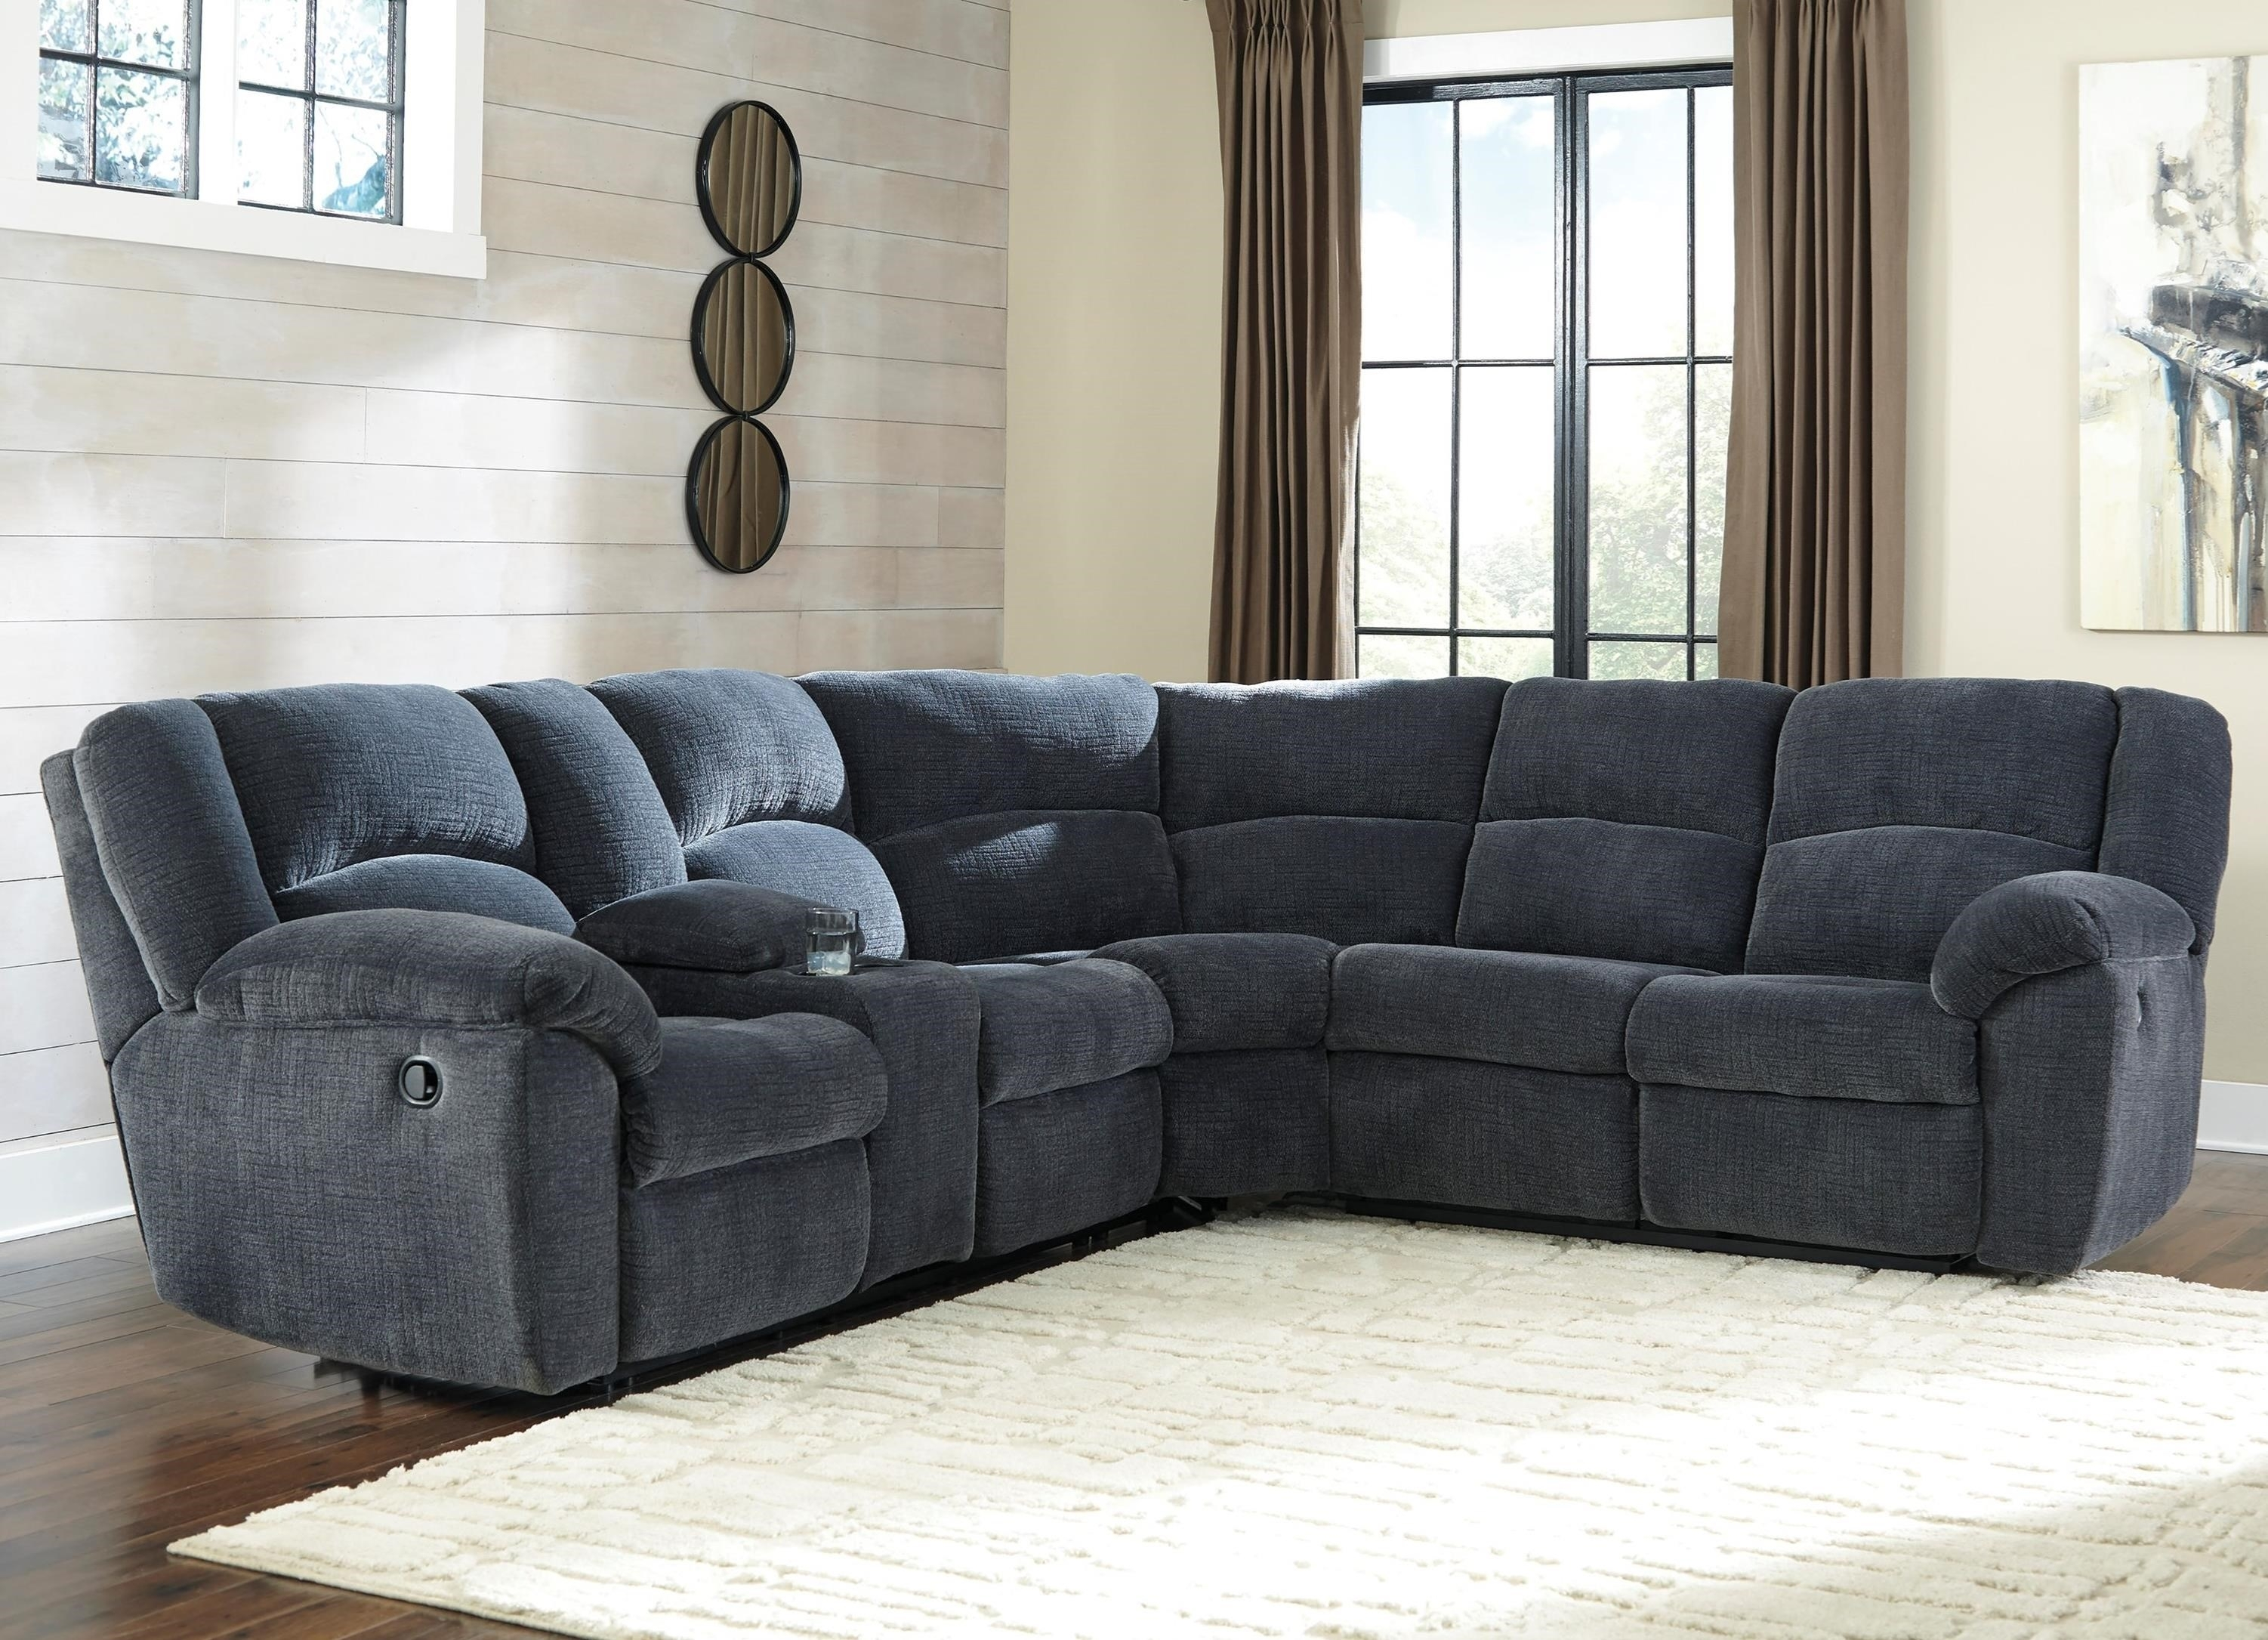 Grey Sectional Sofa Toronto Costco Gray Leather With Recliners Light Intended For Sectional Sofas In Toronto (View 5 of 10)